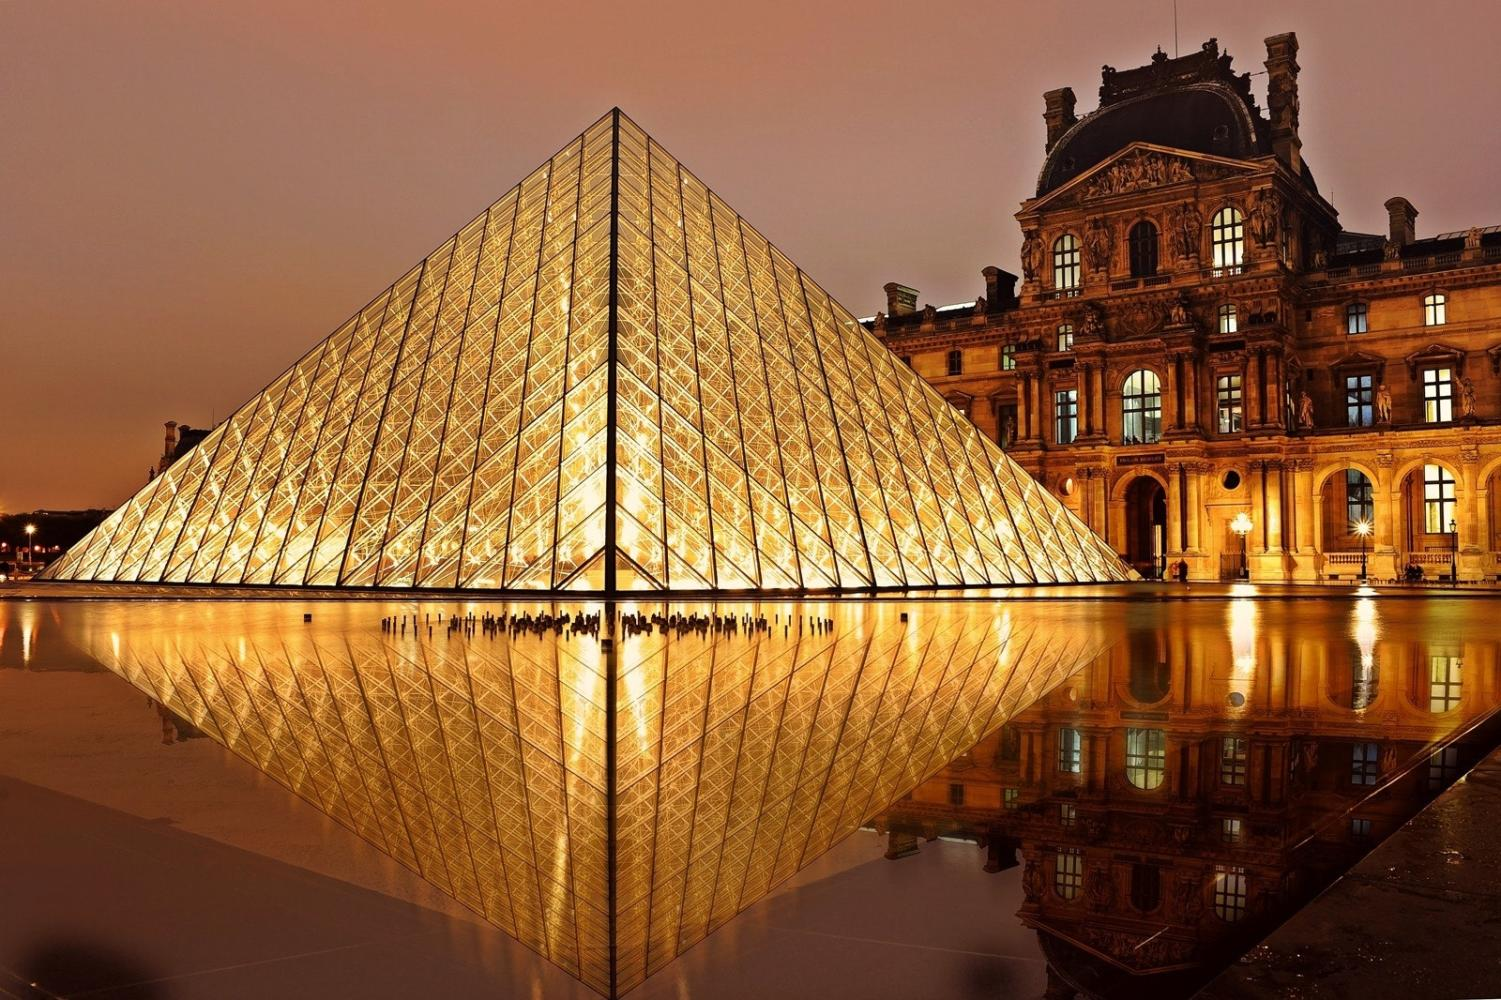 Clear Glass at The Lourve in Paris, France. The students will visit the Louvre on the EF trip.